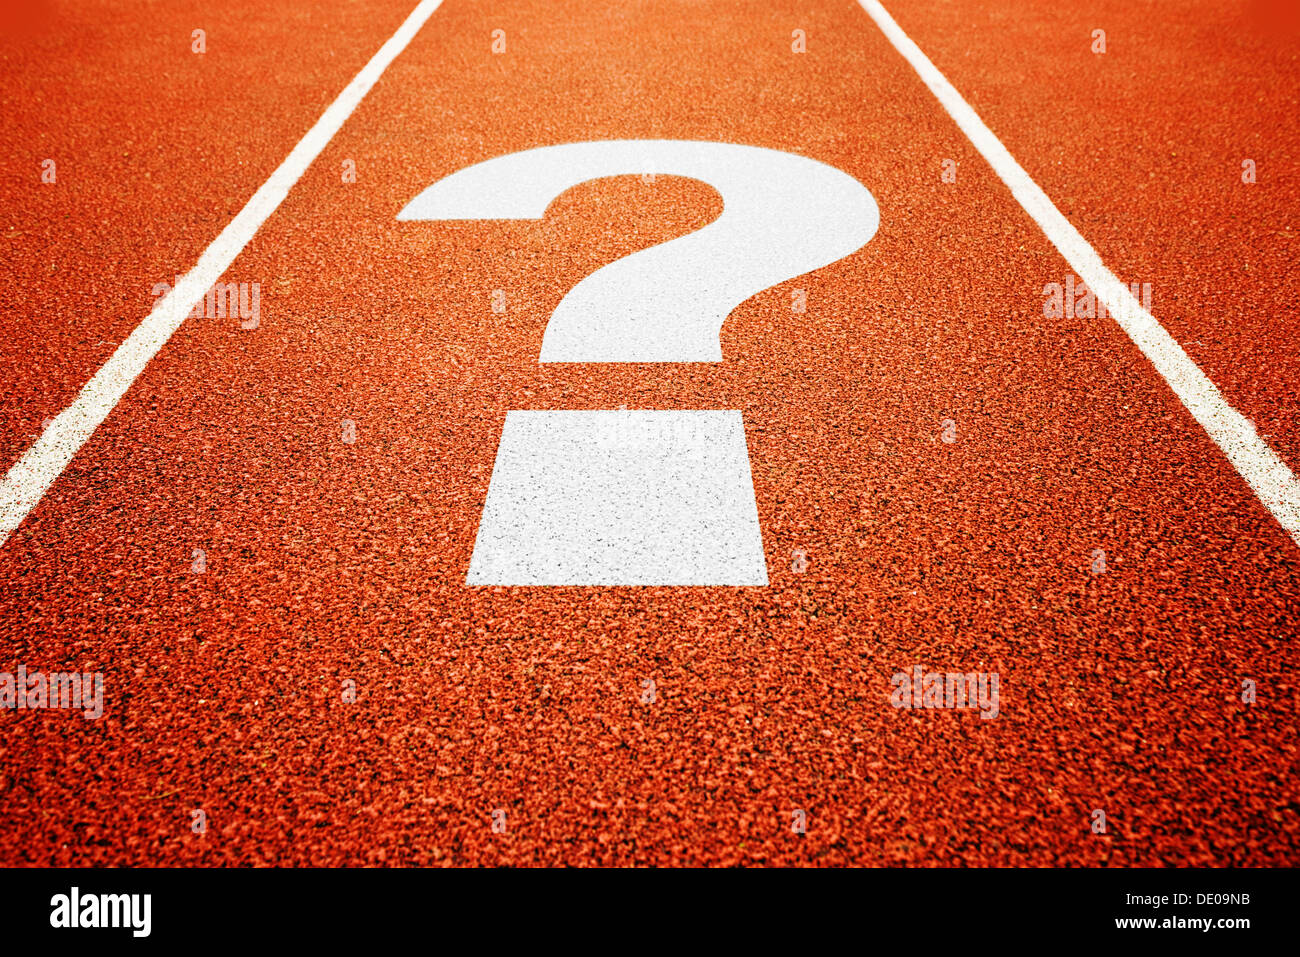 question mark on athletics all weather running track - Stock Image